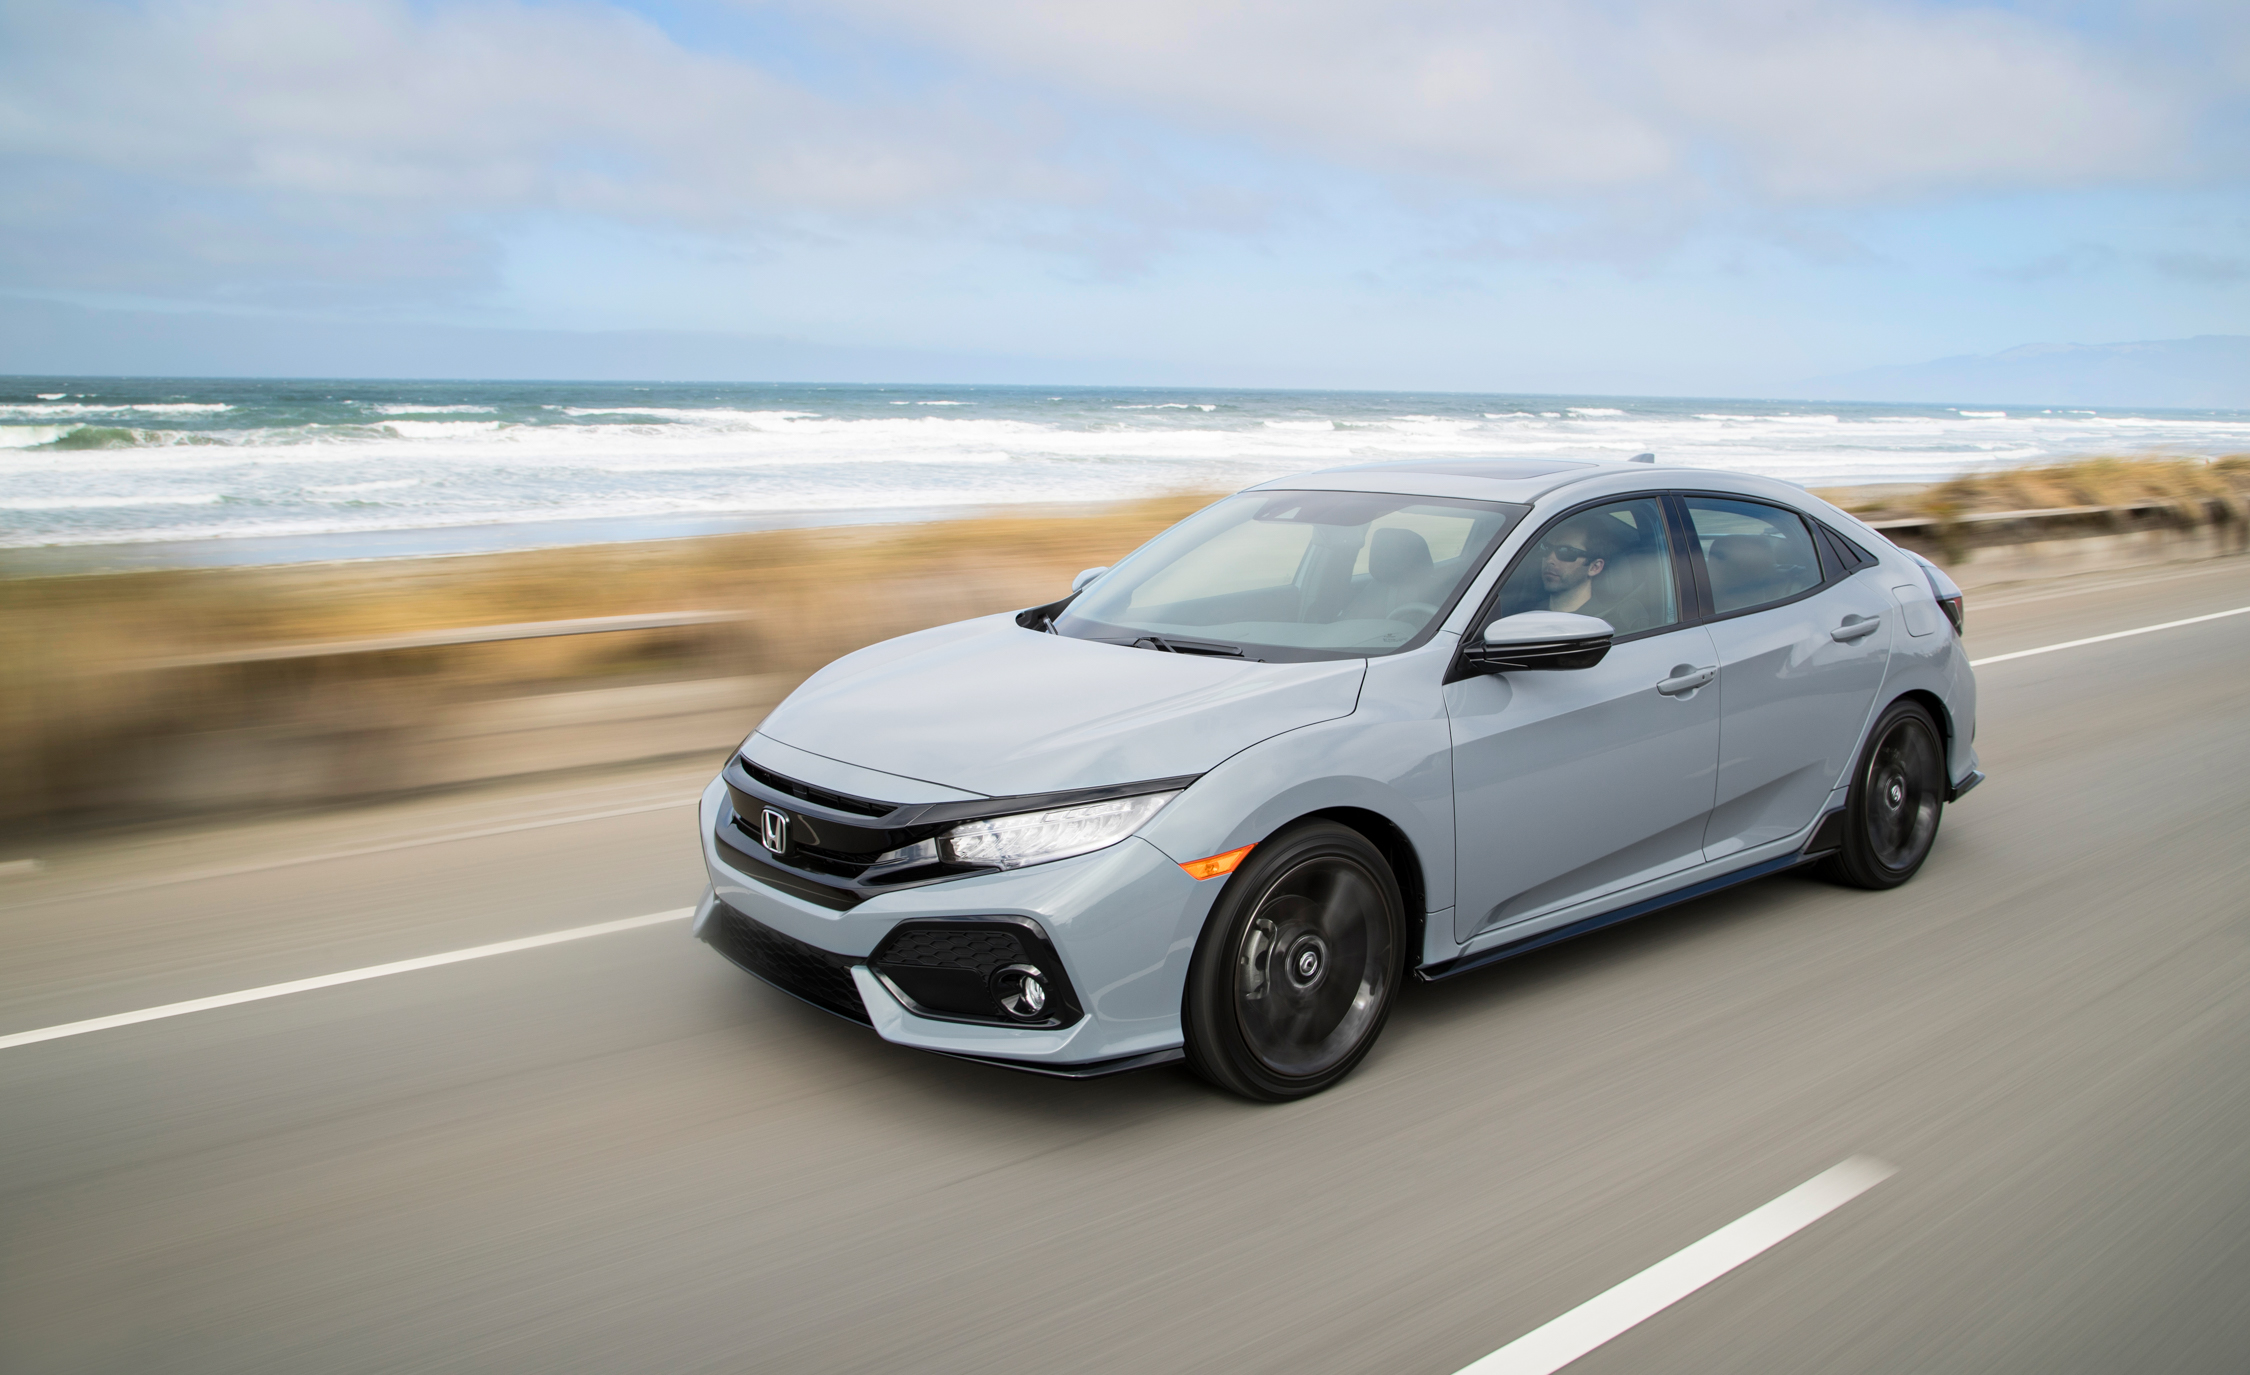 2017 Honda Civic Hatchback (View 7 of 34)